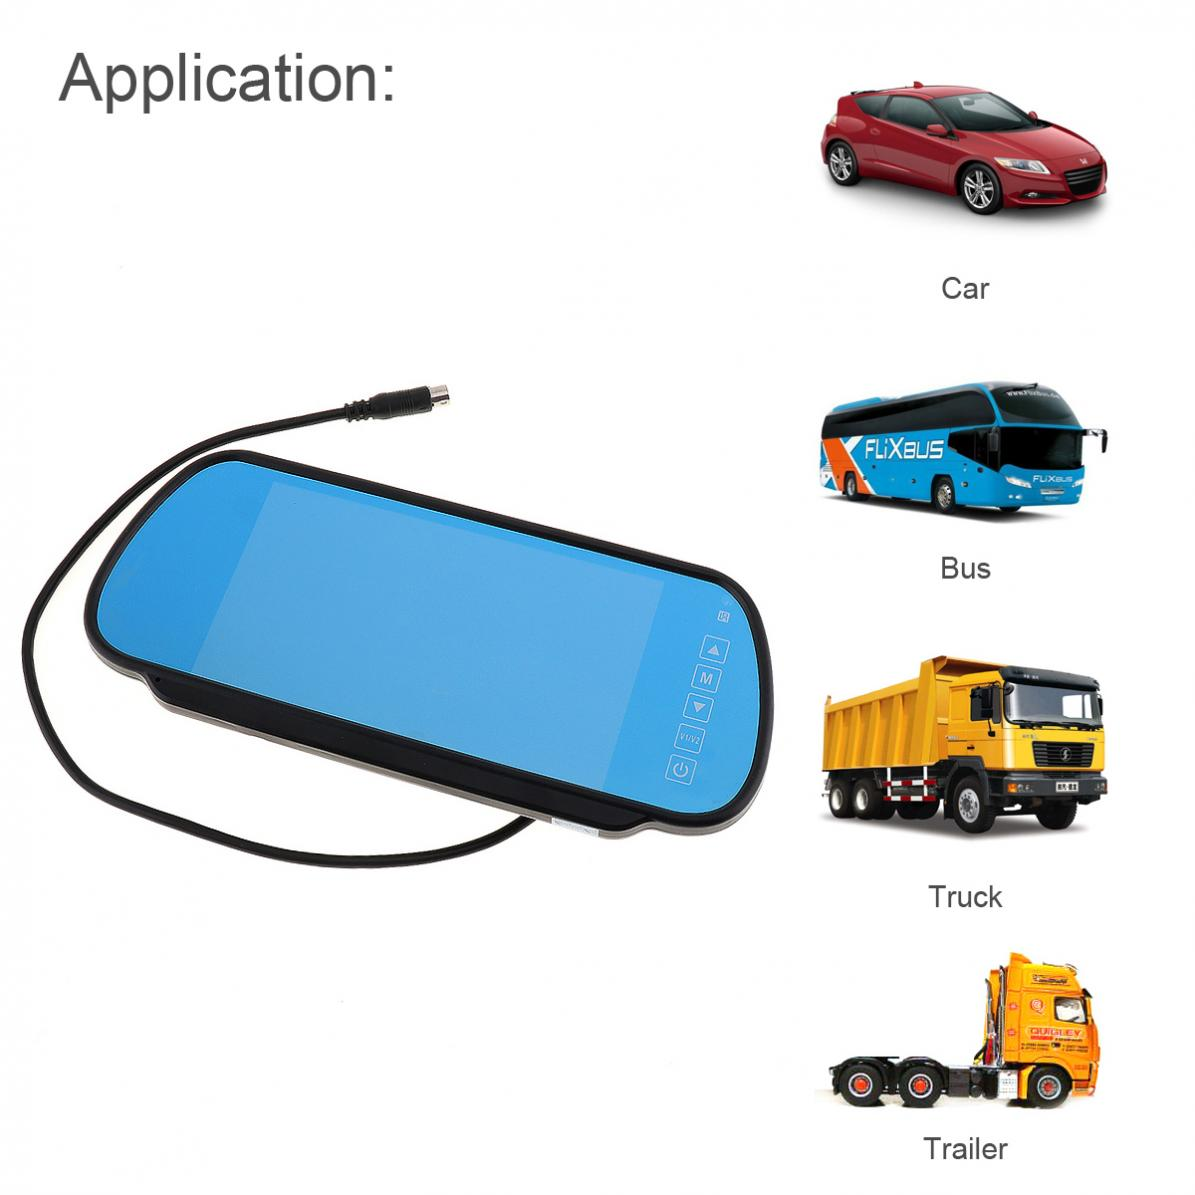 7 Inch 480x234 LCD Widescreen Car Rear View Monitor with Touch Button Auto Car Monitor 2 Channel Video Input